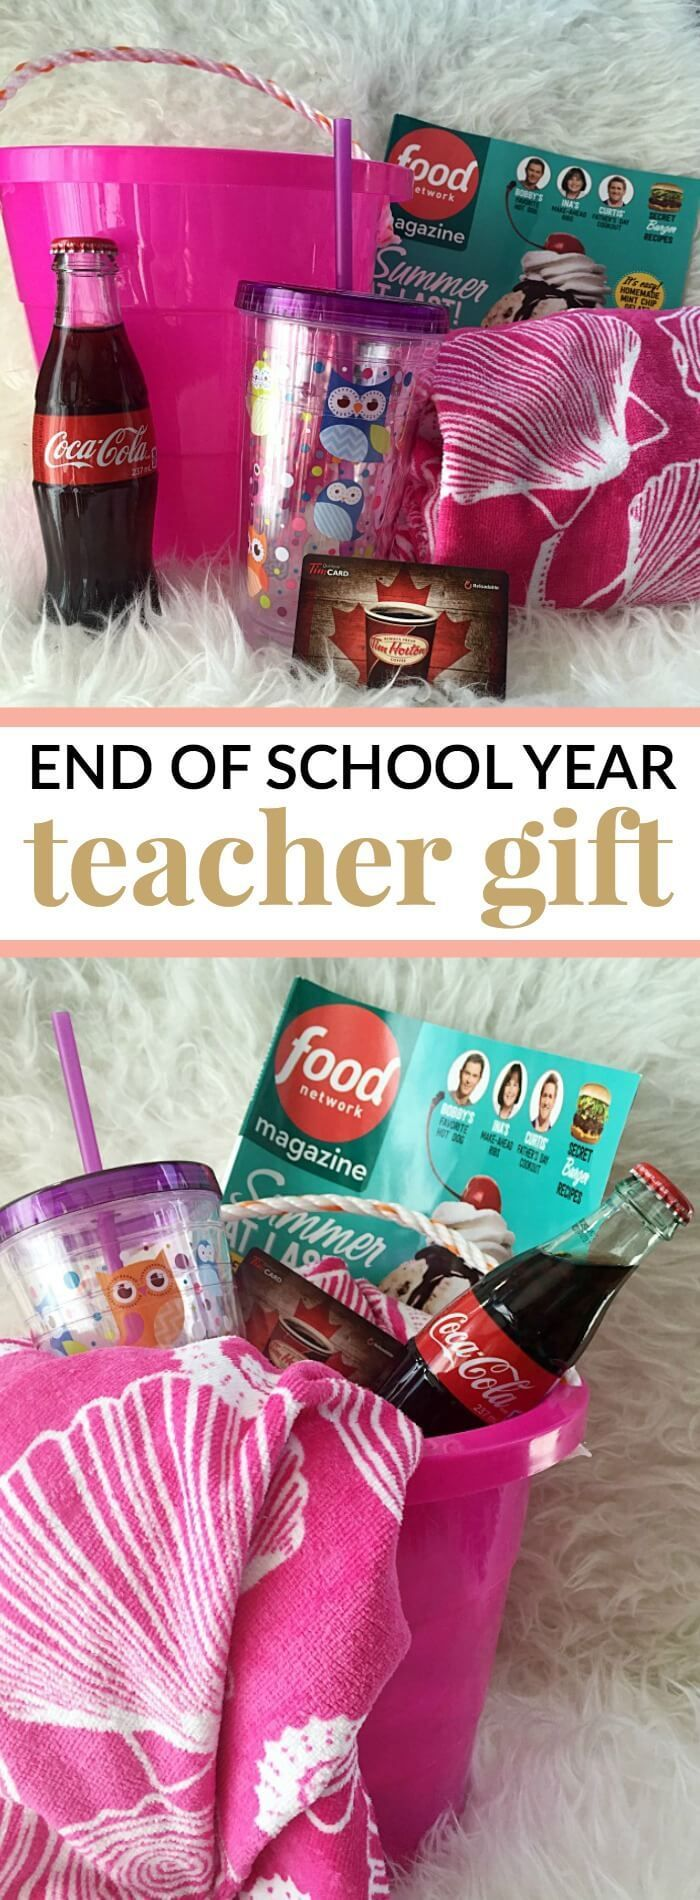 1000+ ideas about Teacher Appreciation on Pinterest ...